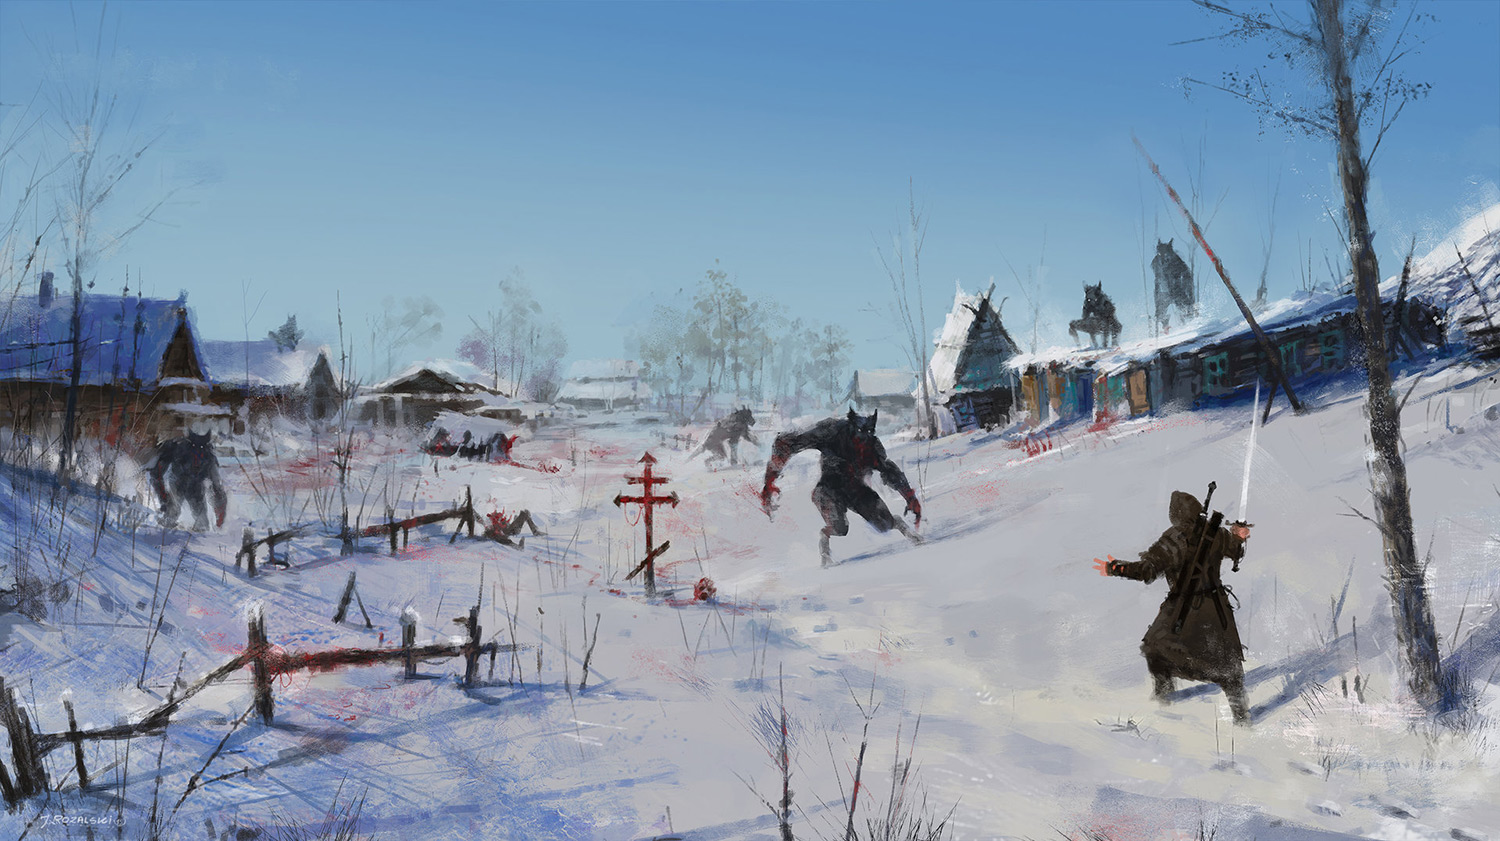 Jakub Rozalski - Very Severe Winter